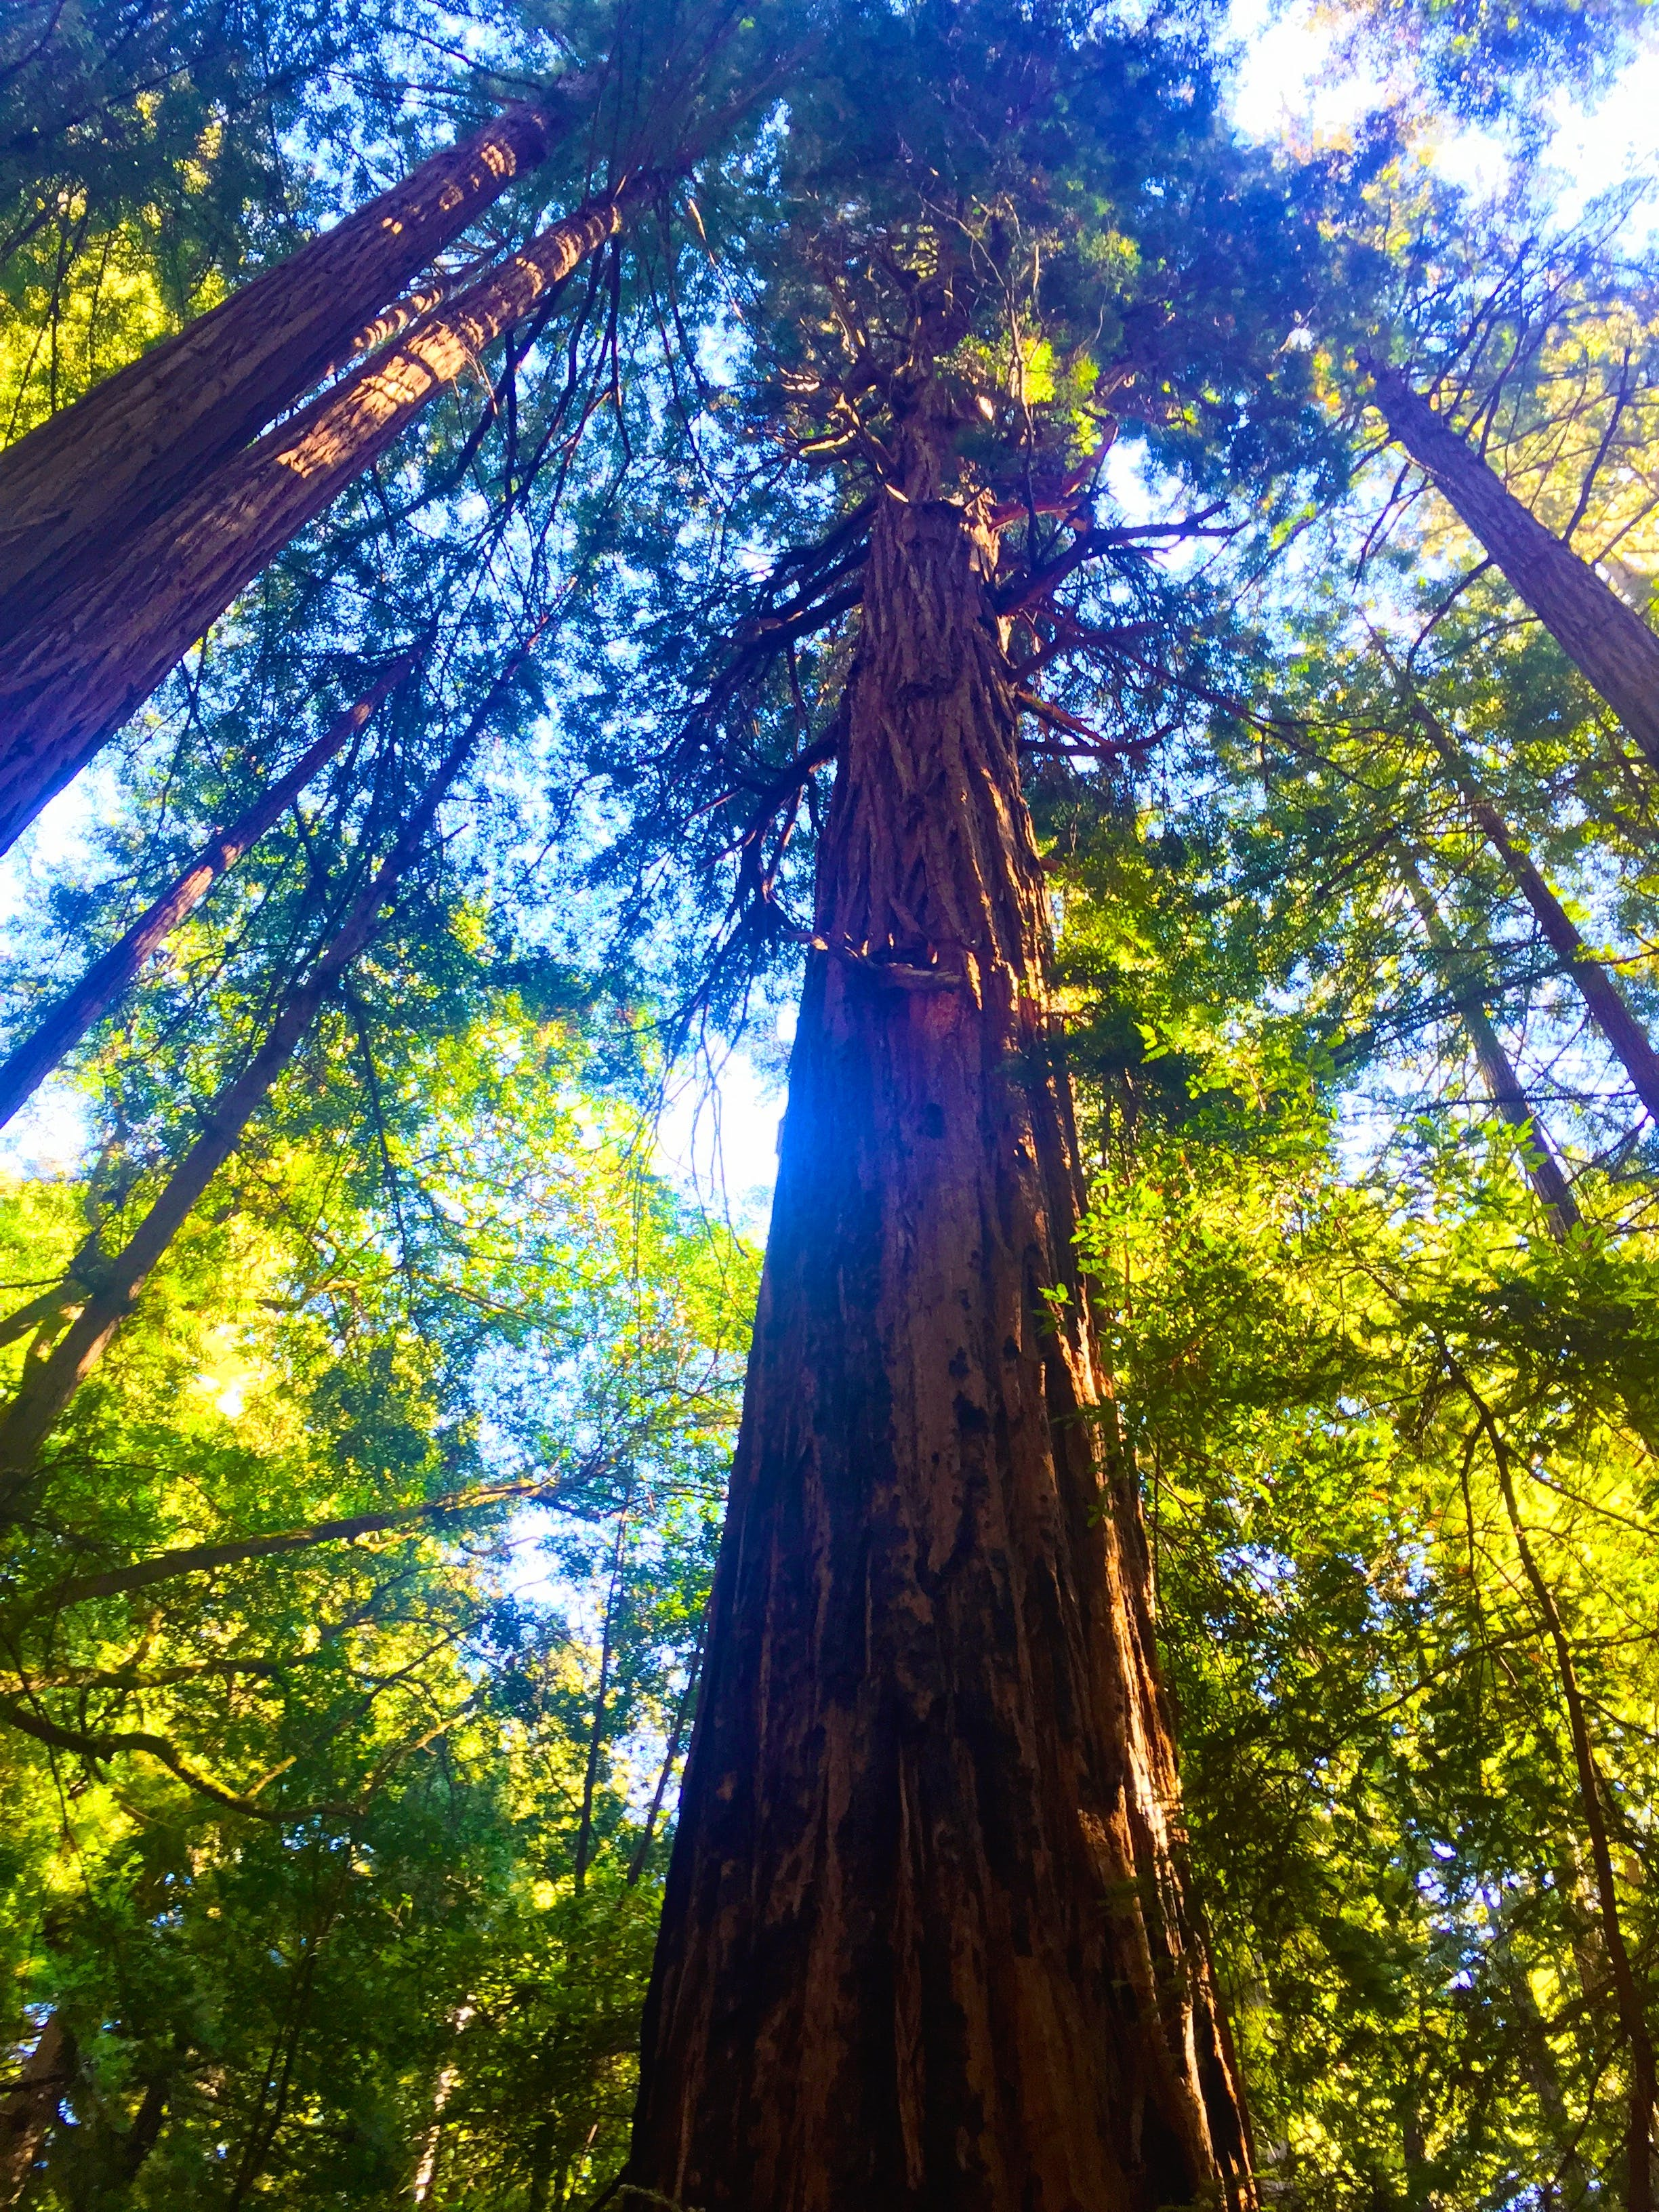 Free stock photo of forest, trees, redwoods